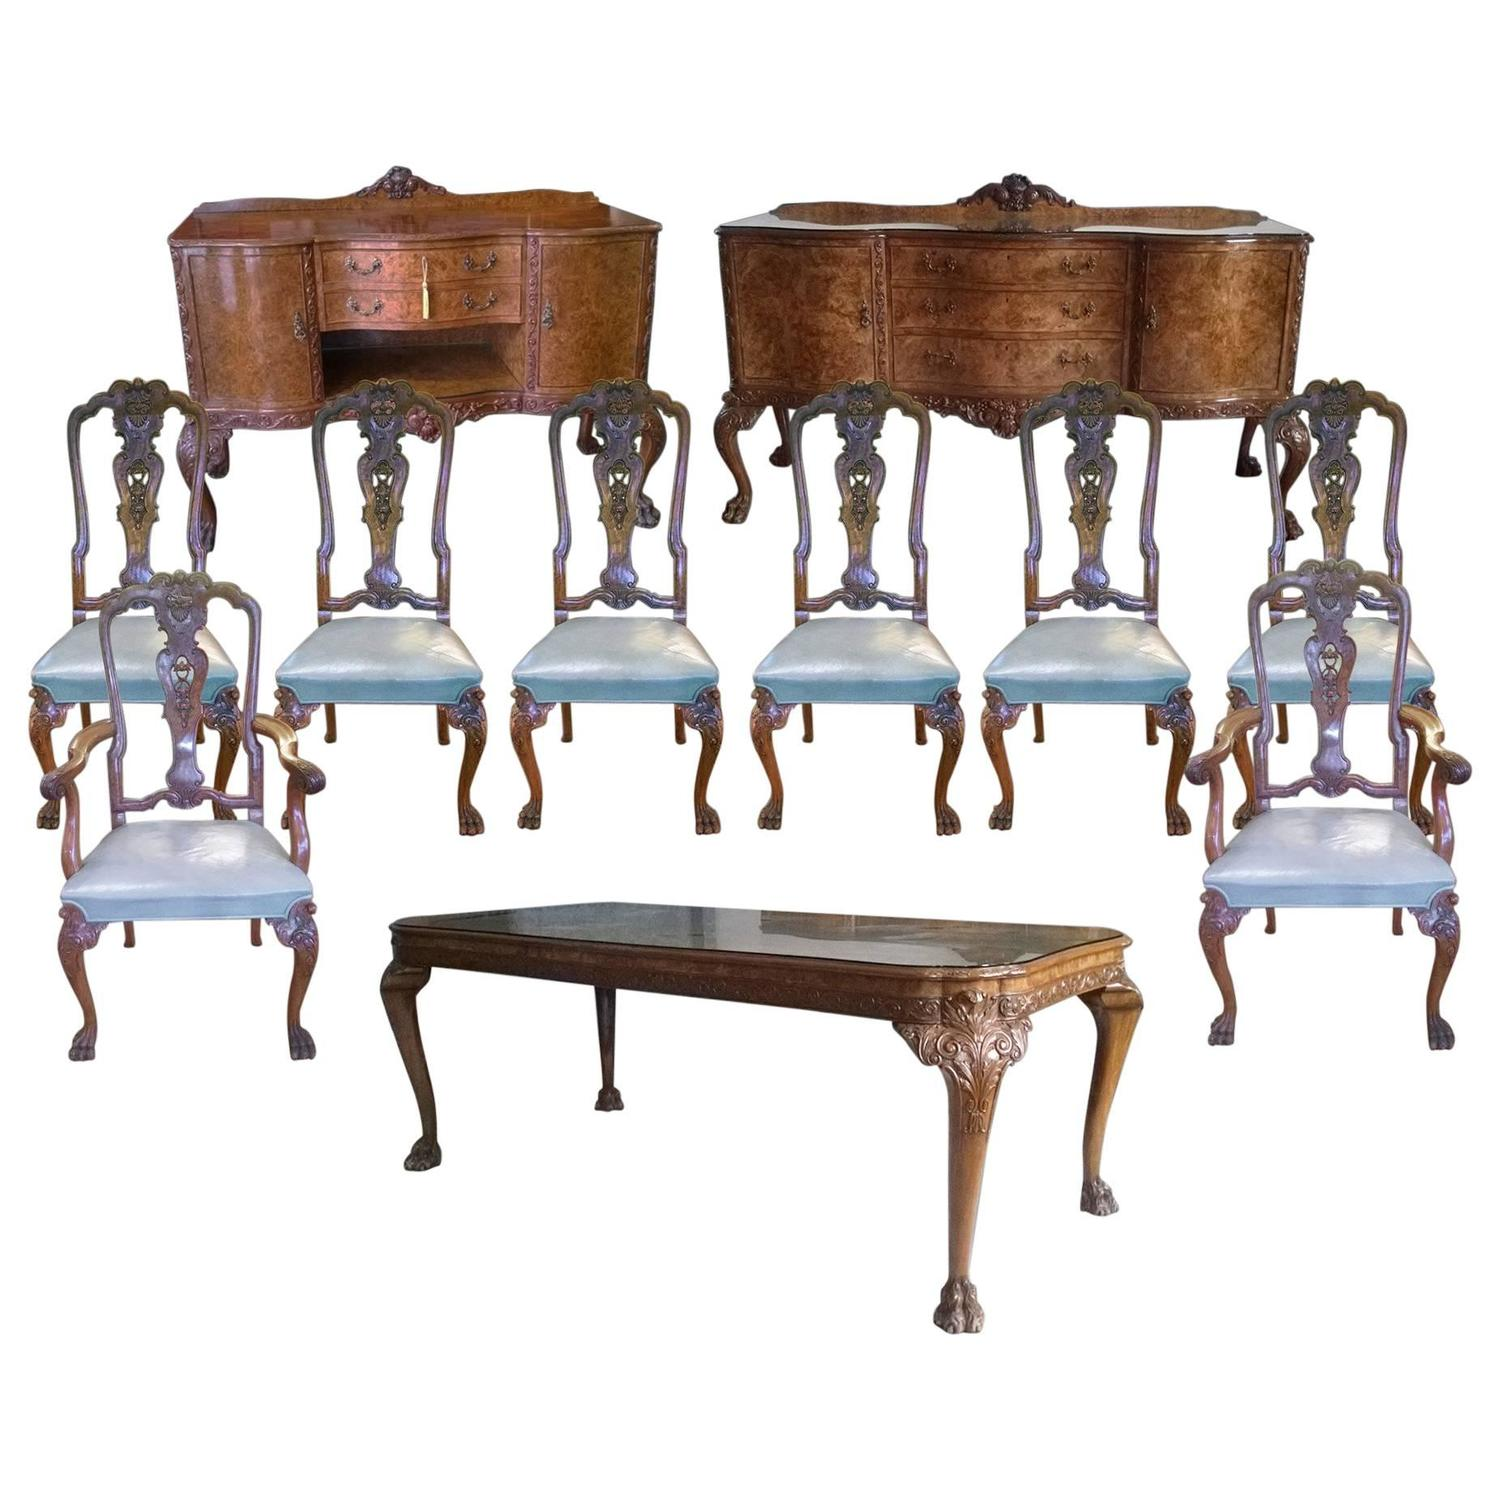 Exceptional Quality 1920s Burr Walnut Queen Anne Style Dining Room Suite  For Sale At 1stdibs